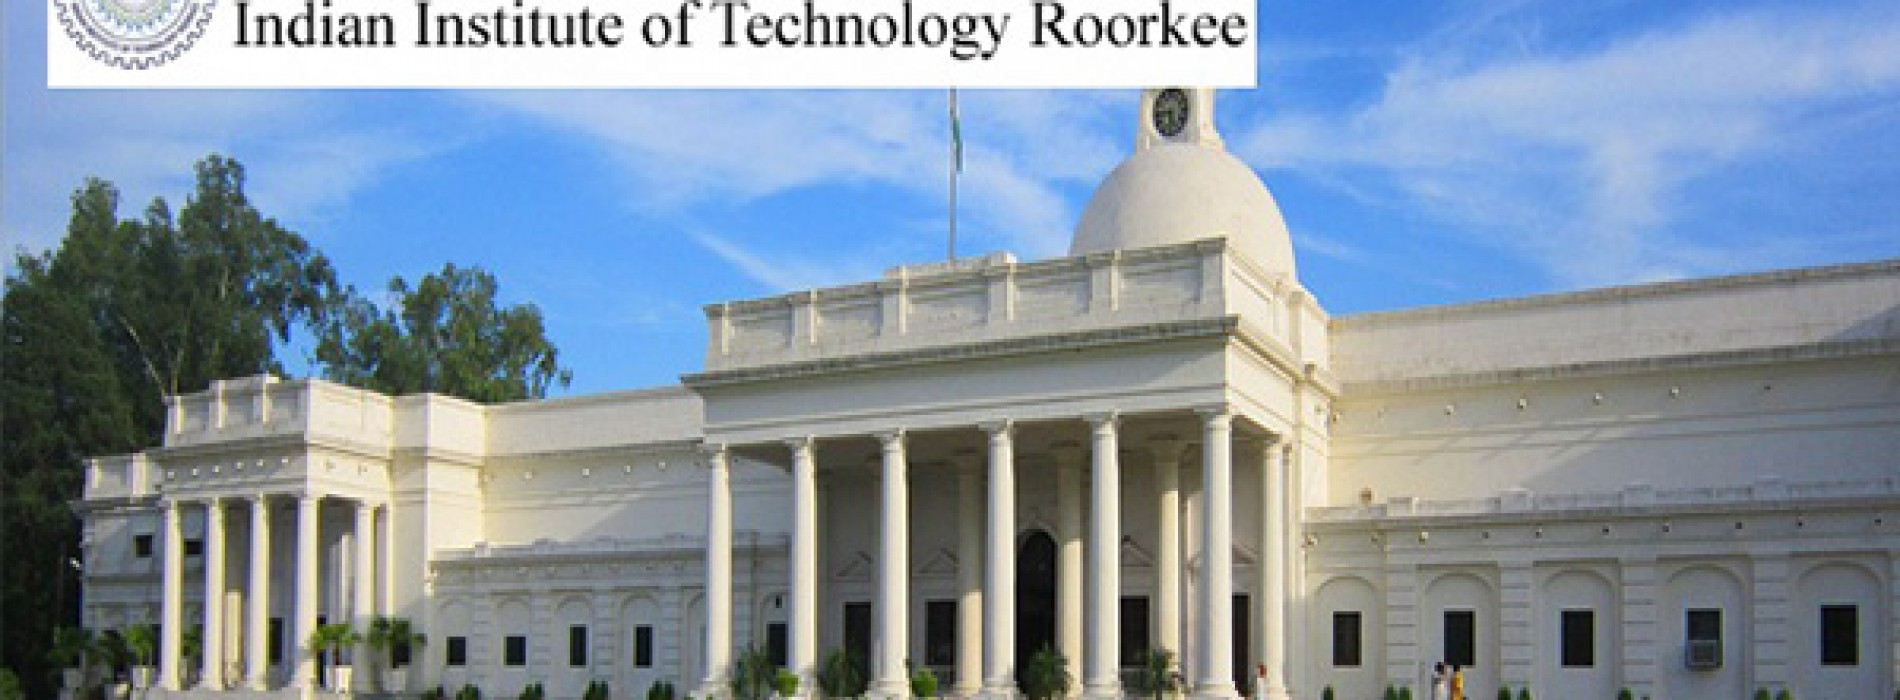 IIT Roorkee is developing drones to make your train journey safer